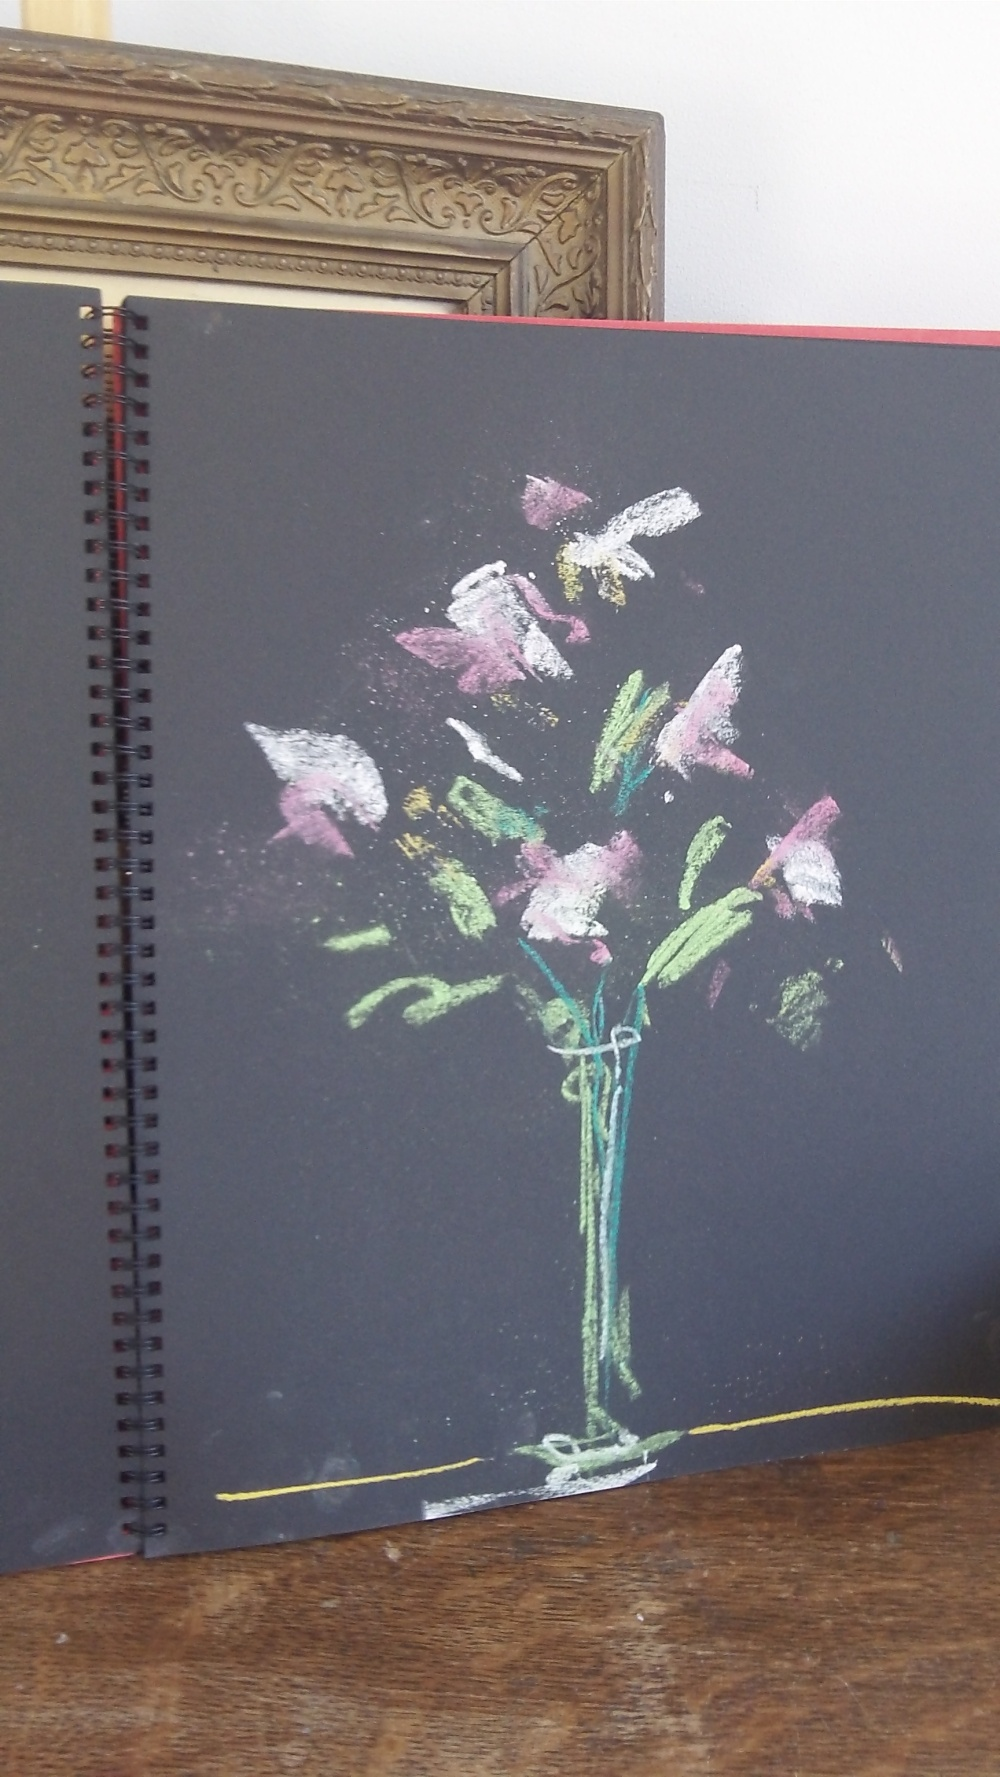 unframed 2 minute pastel sketch  in pink and green